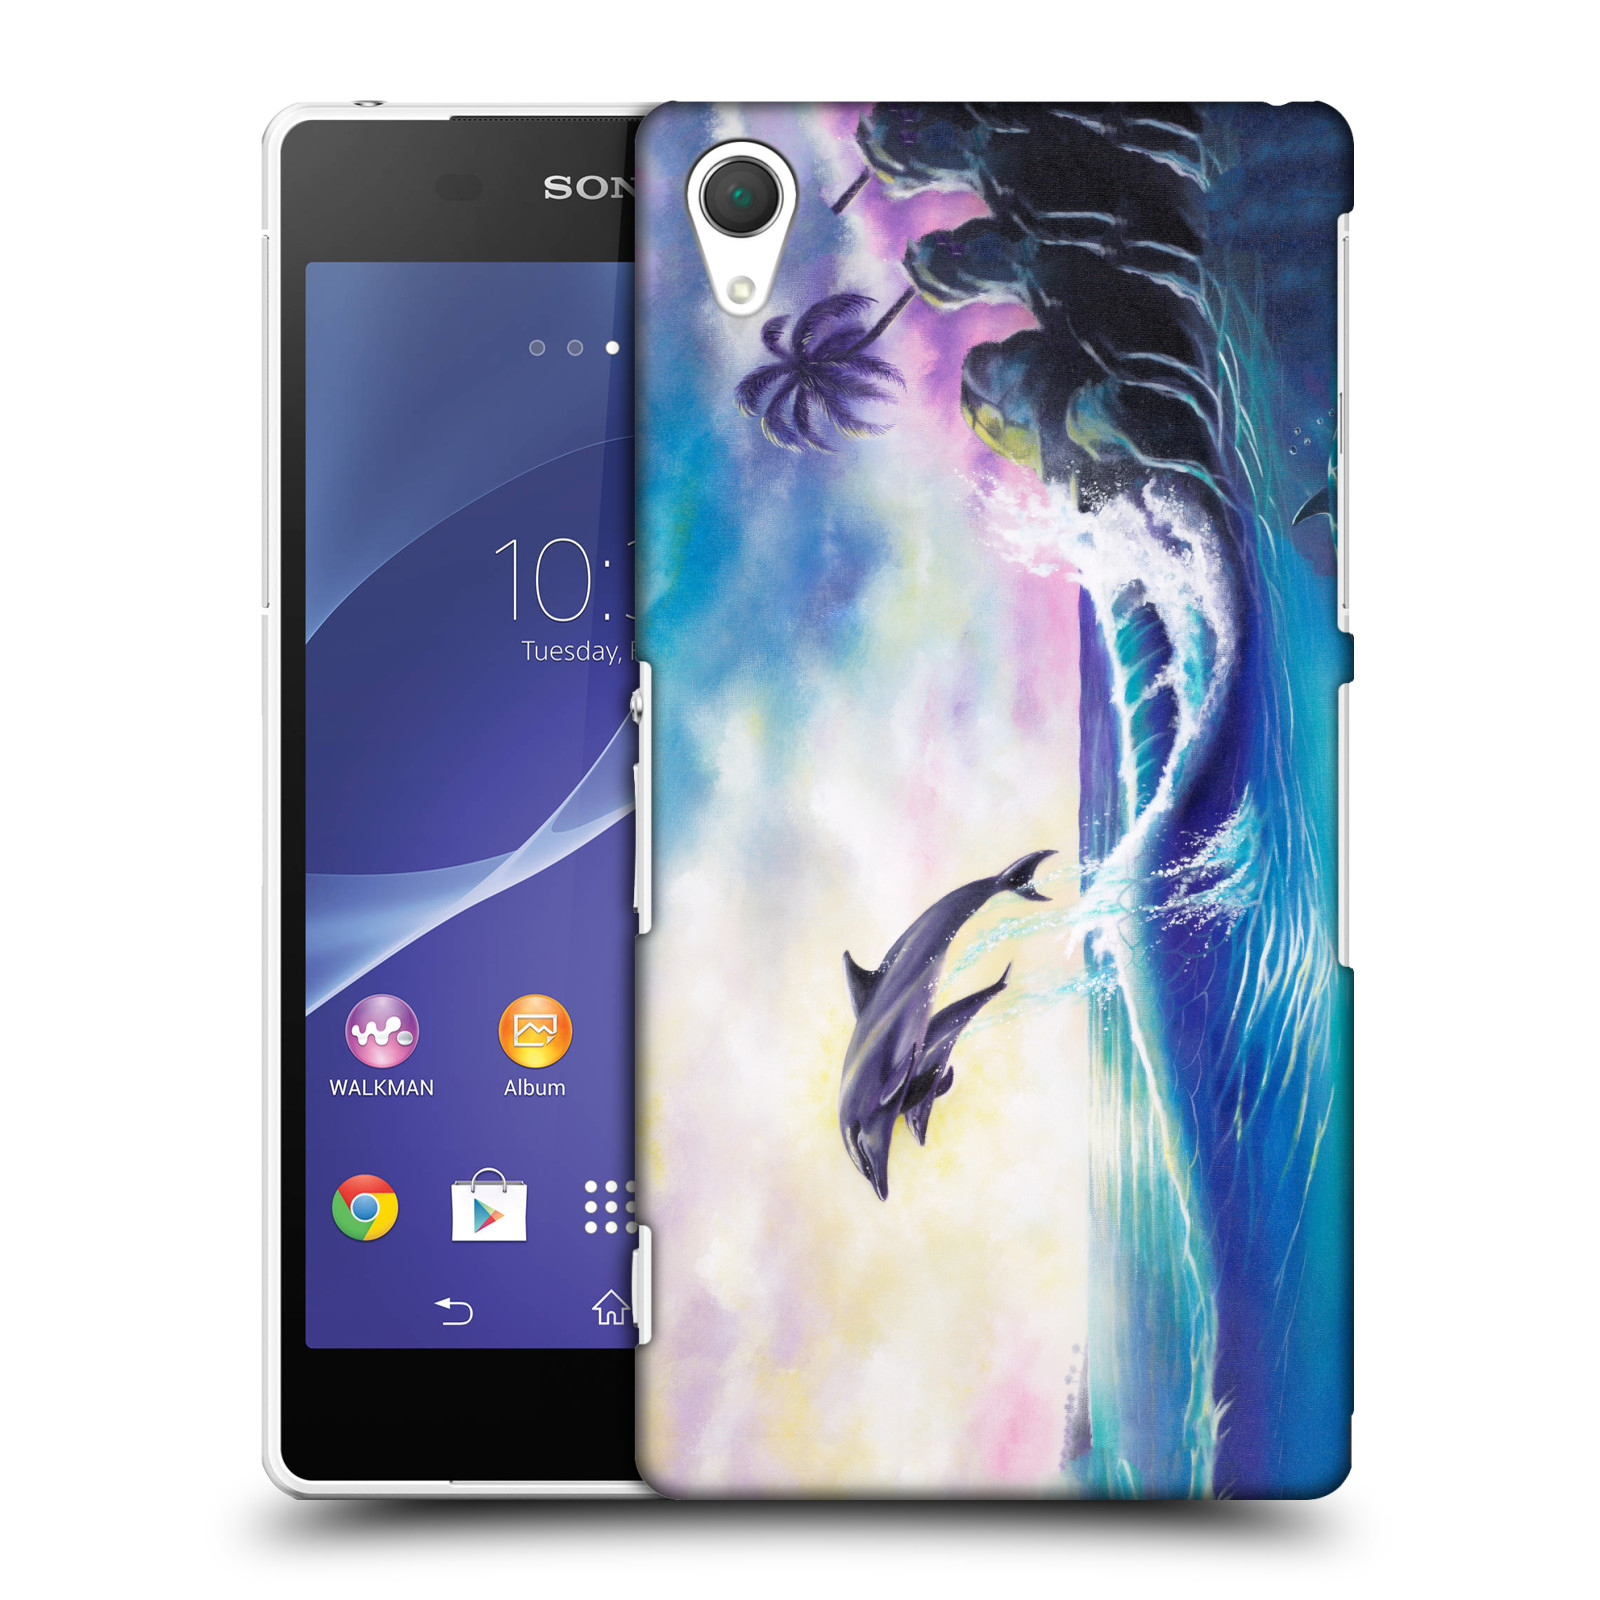 OFFICIAL-GENO-PEOPLES-ART-HOLIDAY-HARD-BACK-CASE-FOR-SONY-PHONES-2